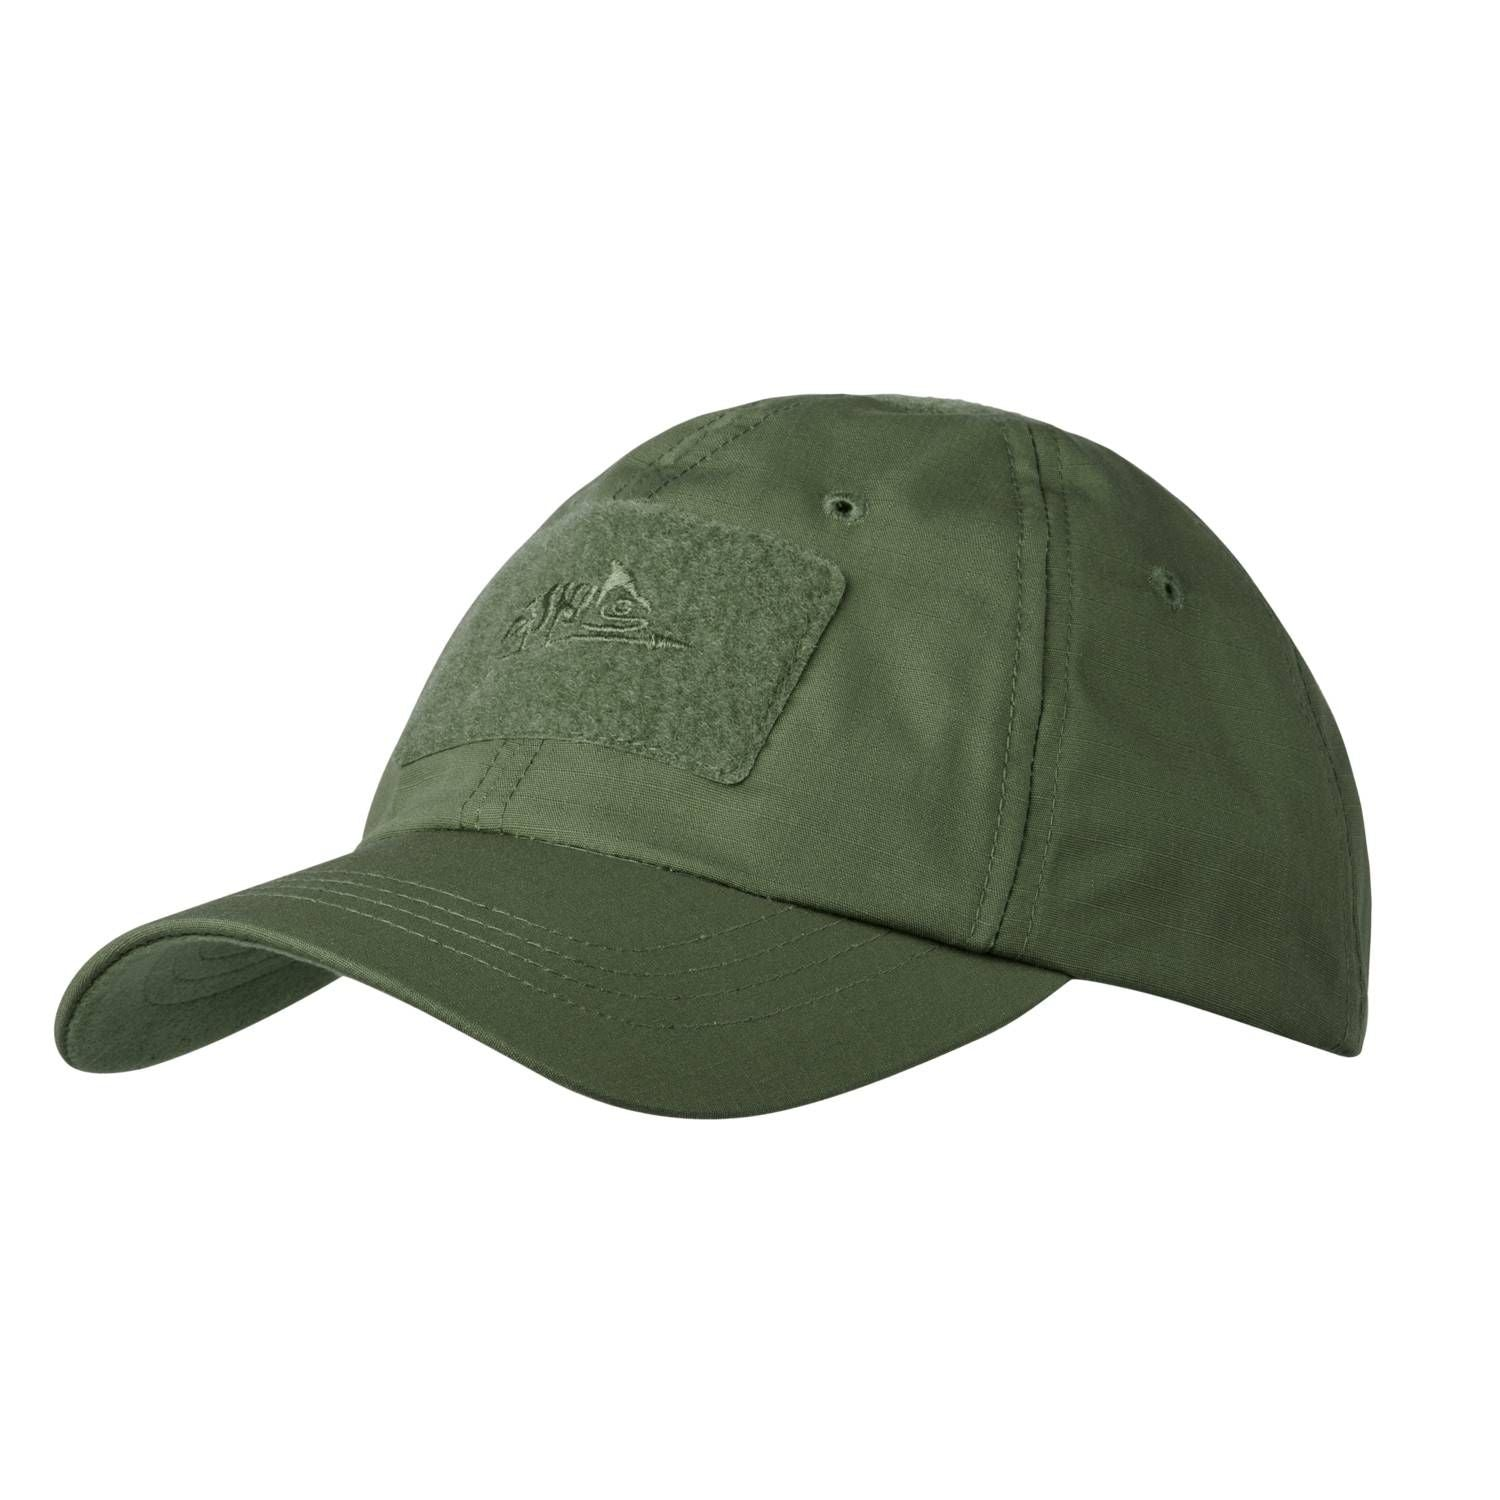 Helikon Tex BBC CAP - POLYCOTTON RIPSTOP Olive Green